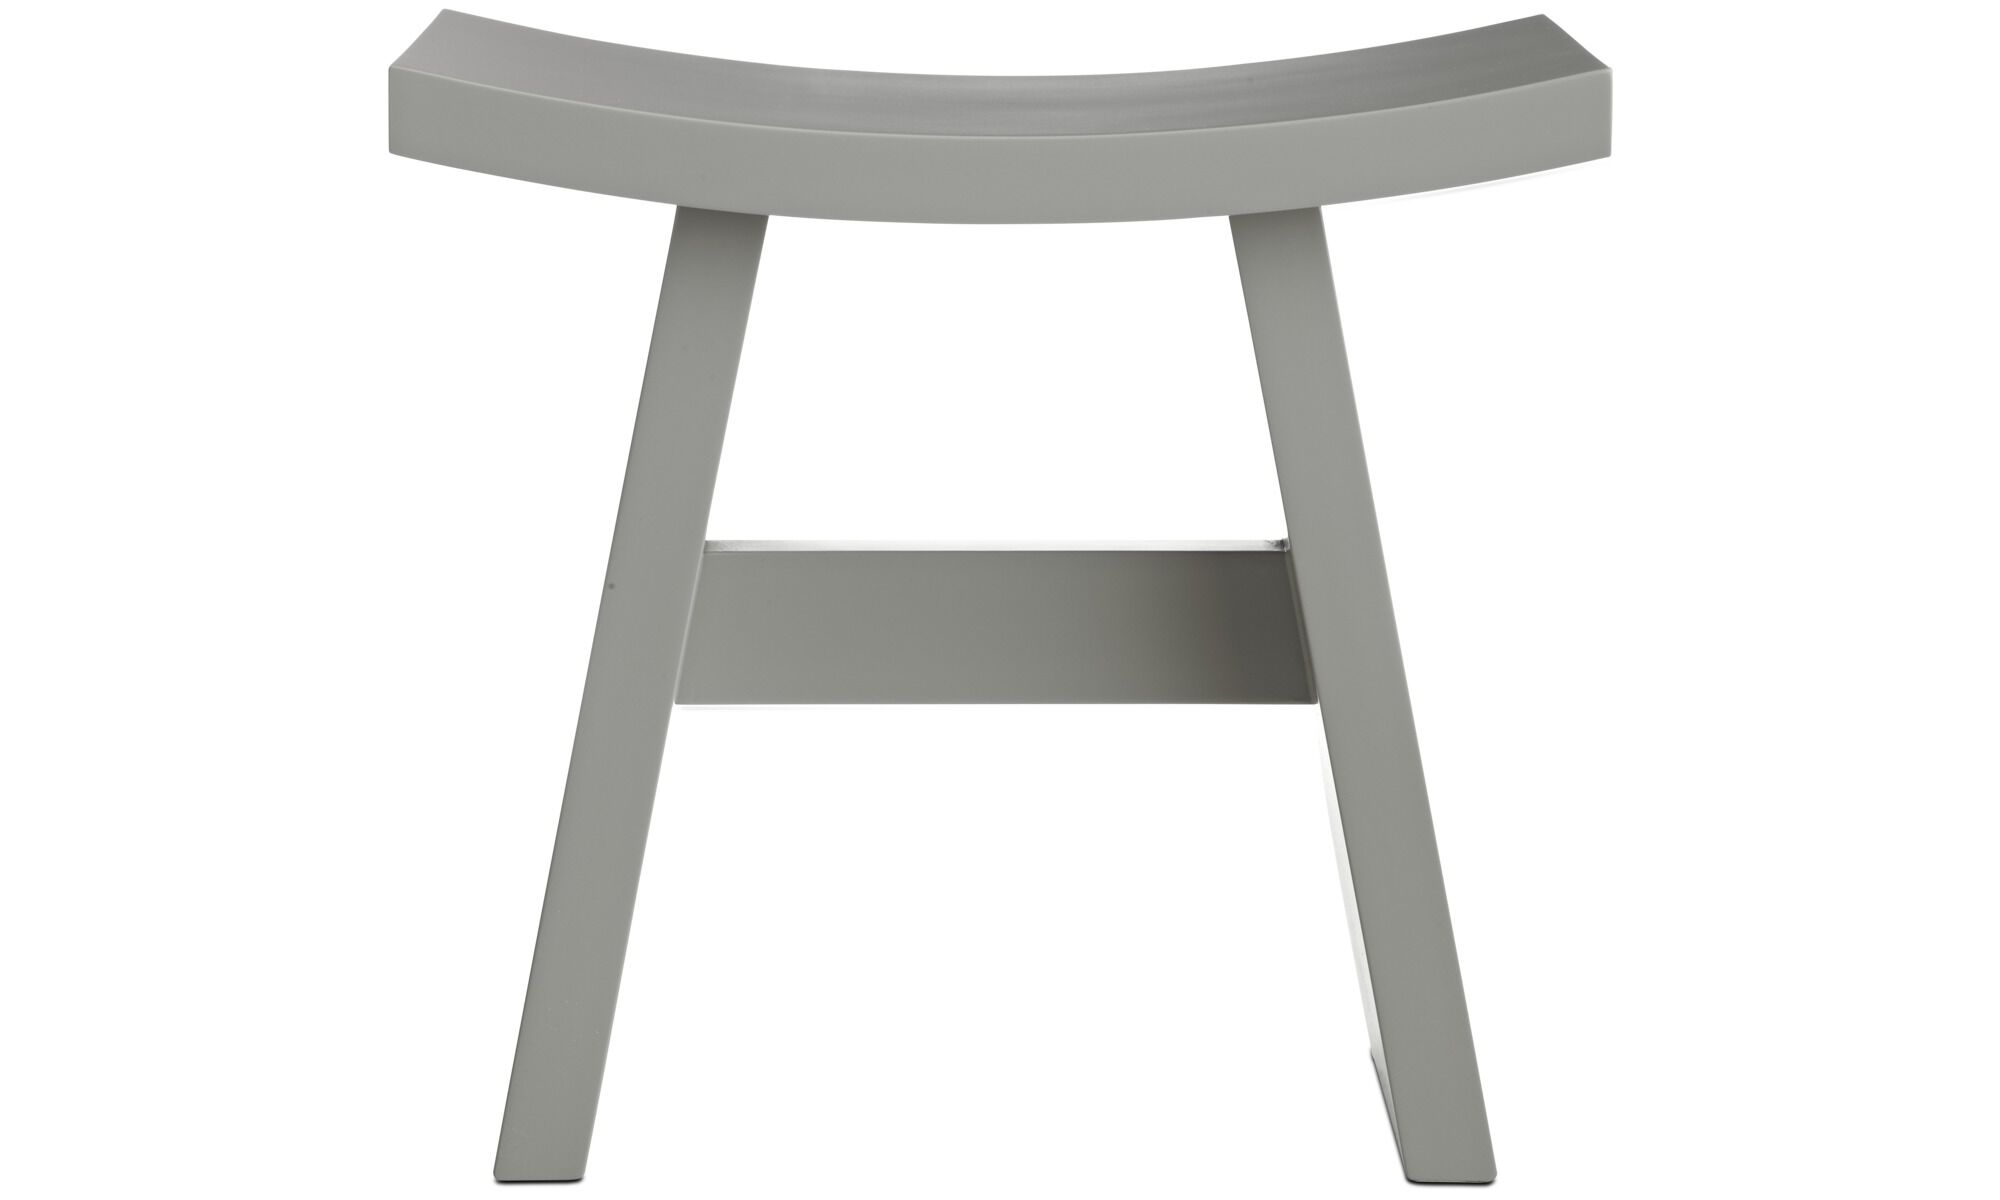 Stools   Shogun Stool   Gray   Wood